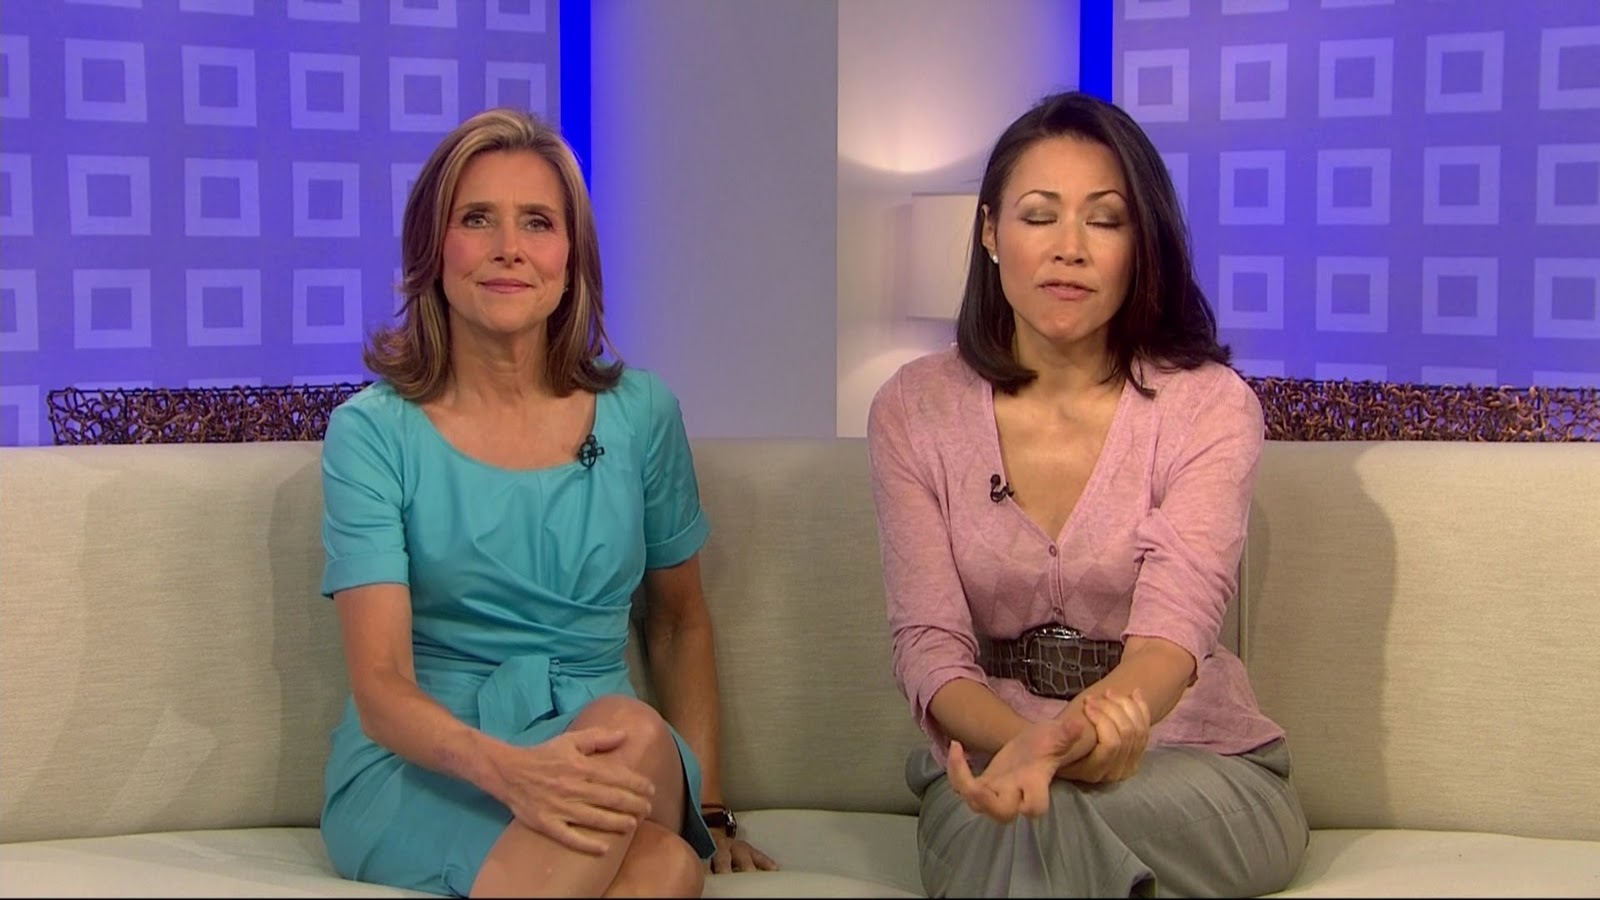 Ann Curry Legs http://meredithvieira.wordpress.com/category/ann-curry/